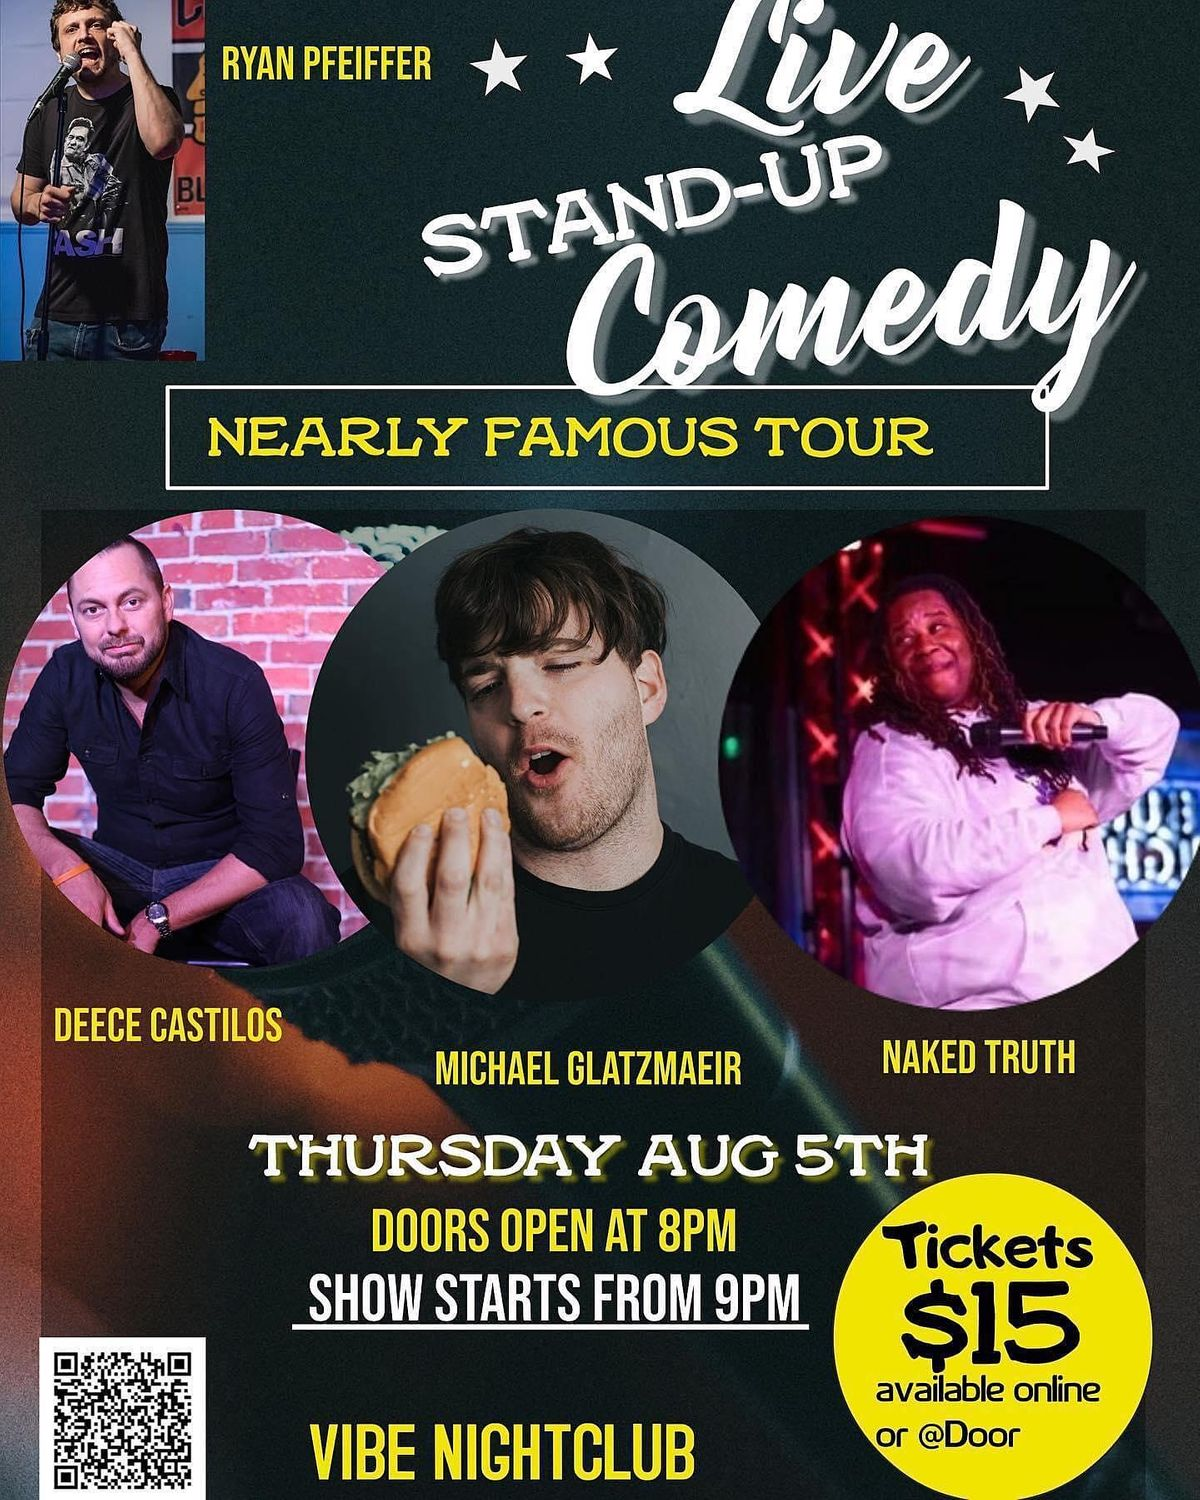 Michael Glatzmaier's Nearly Famous Tour Improvised Musical Stand-Up Comedy, 5 August   Event in Fort Walton Beach